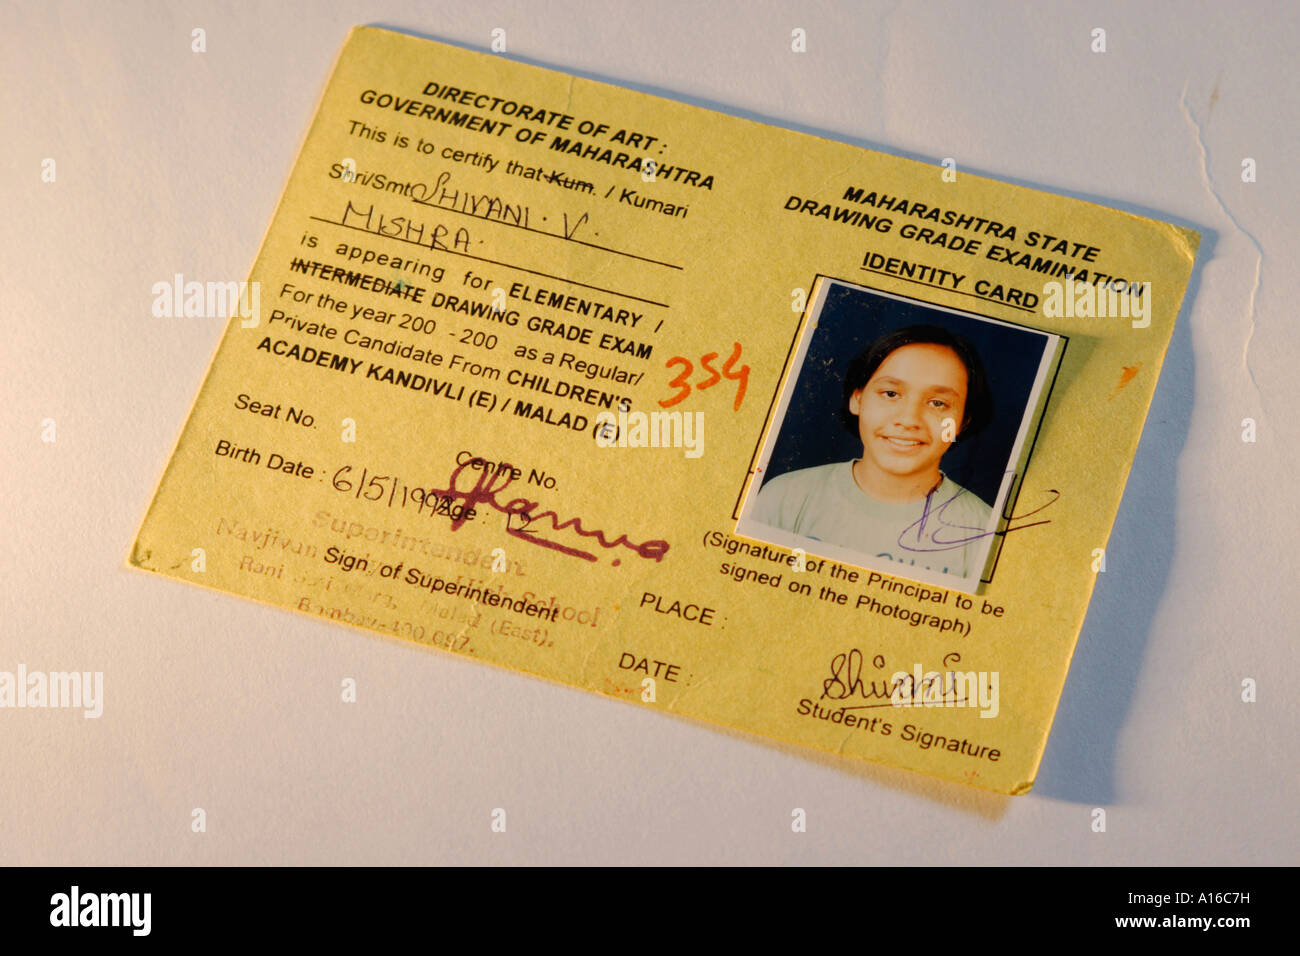 Identification card of Maharashtra State Drawing Grade